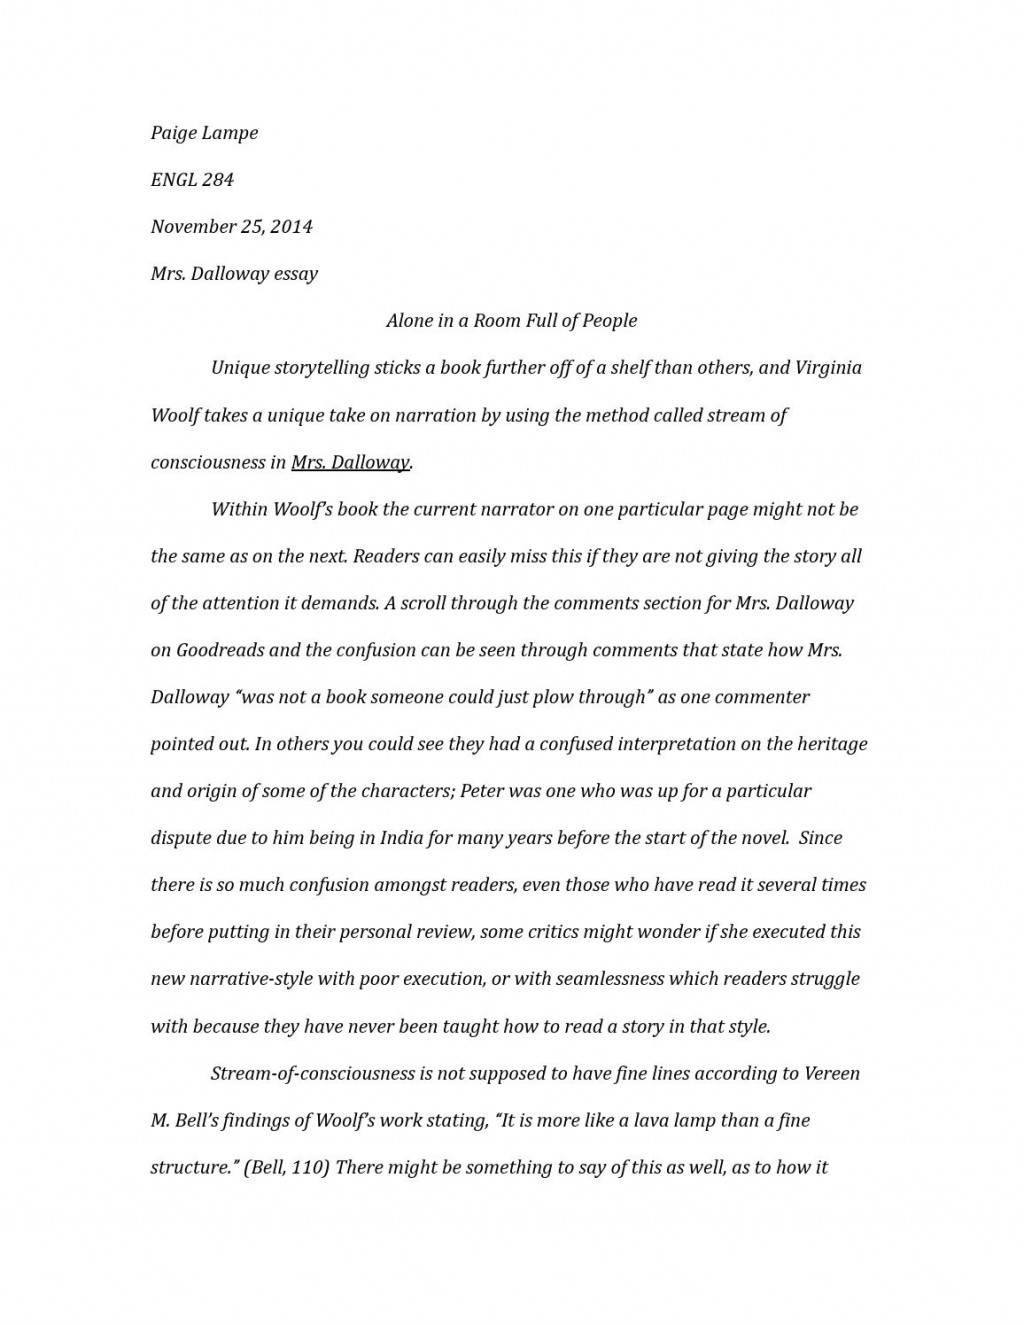 002 Mrs Dalloway Essay Page 1 Marvelous Critical Analysis Prompts Large